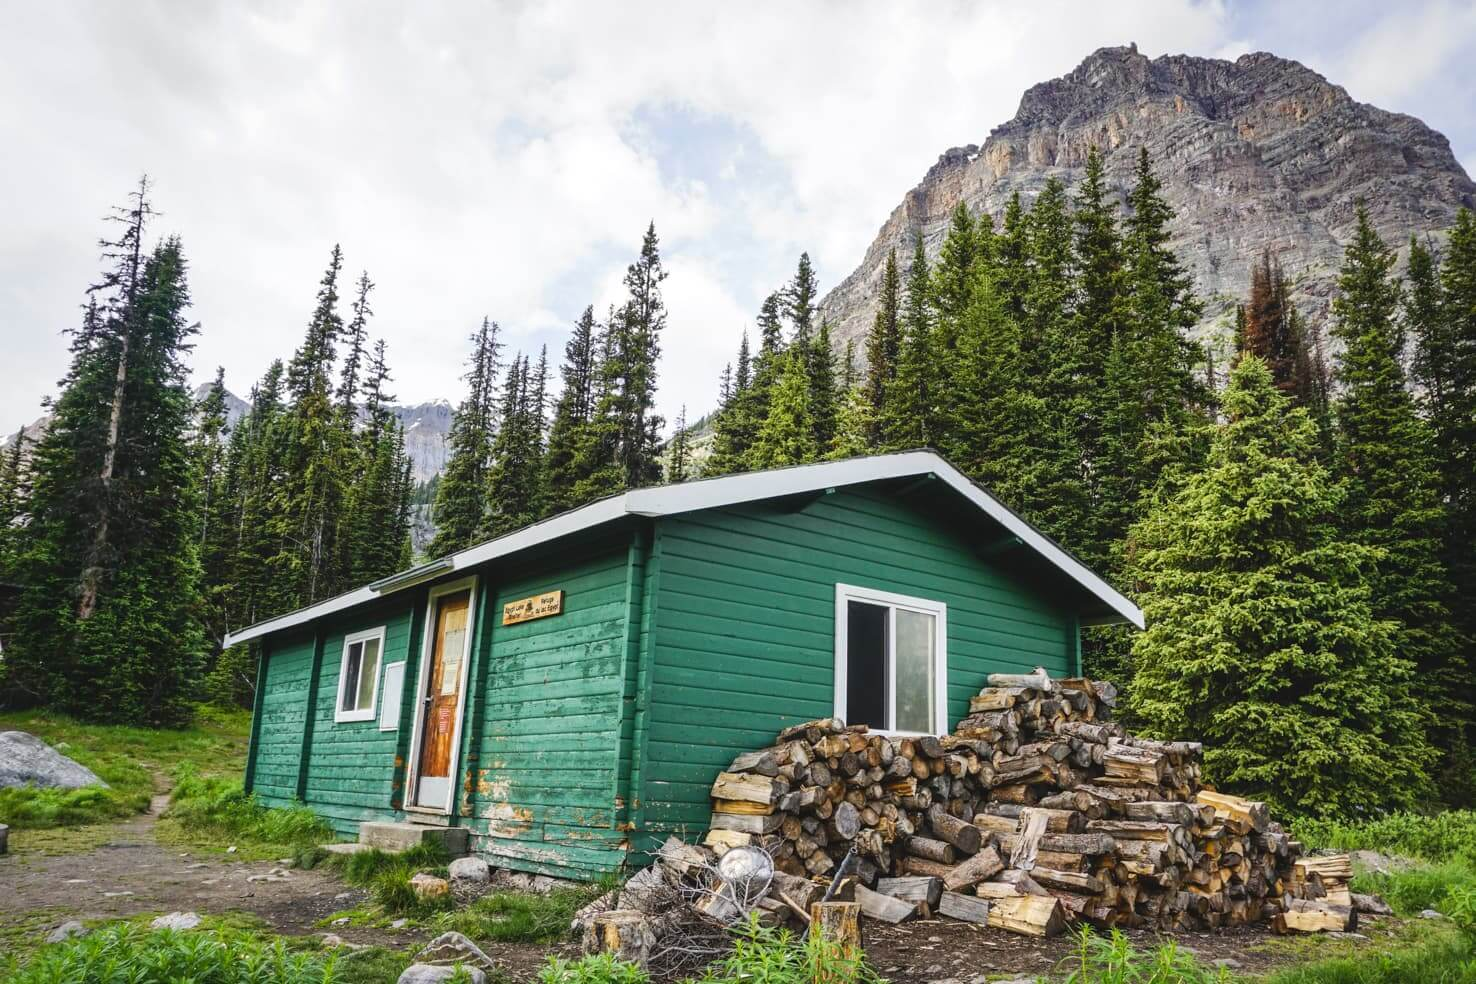 Camping in Banff National Park - backcountry shelter